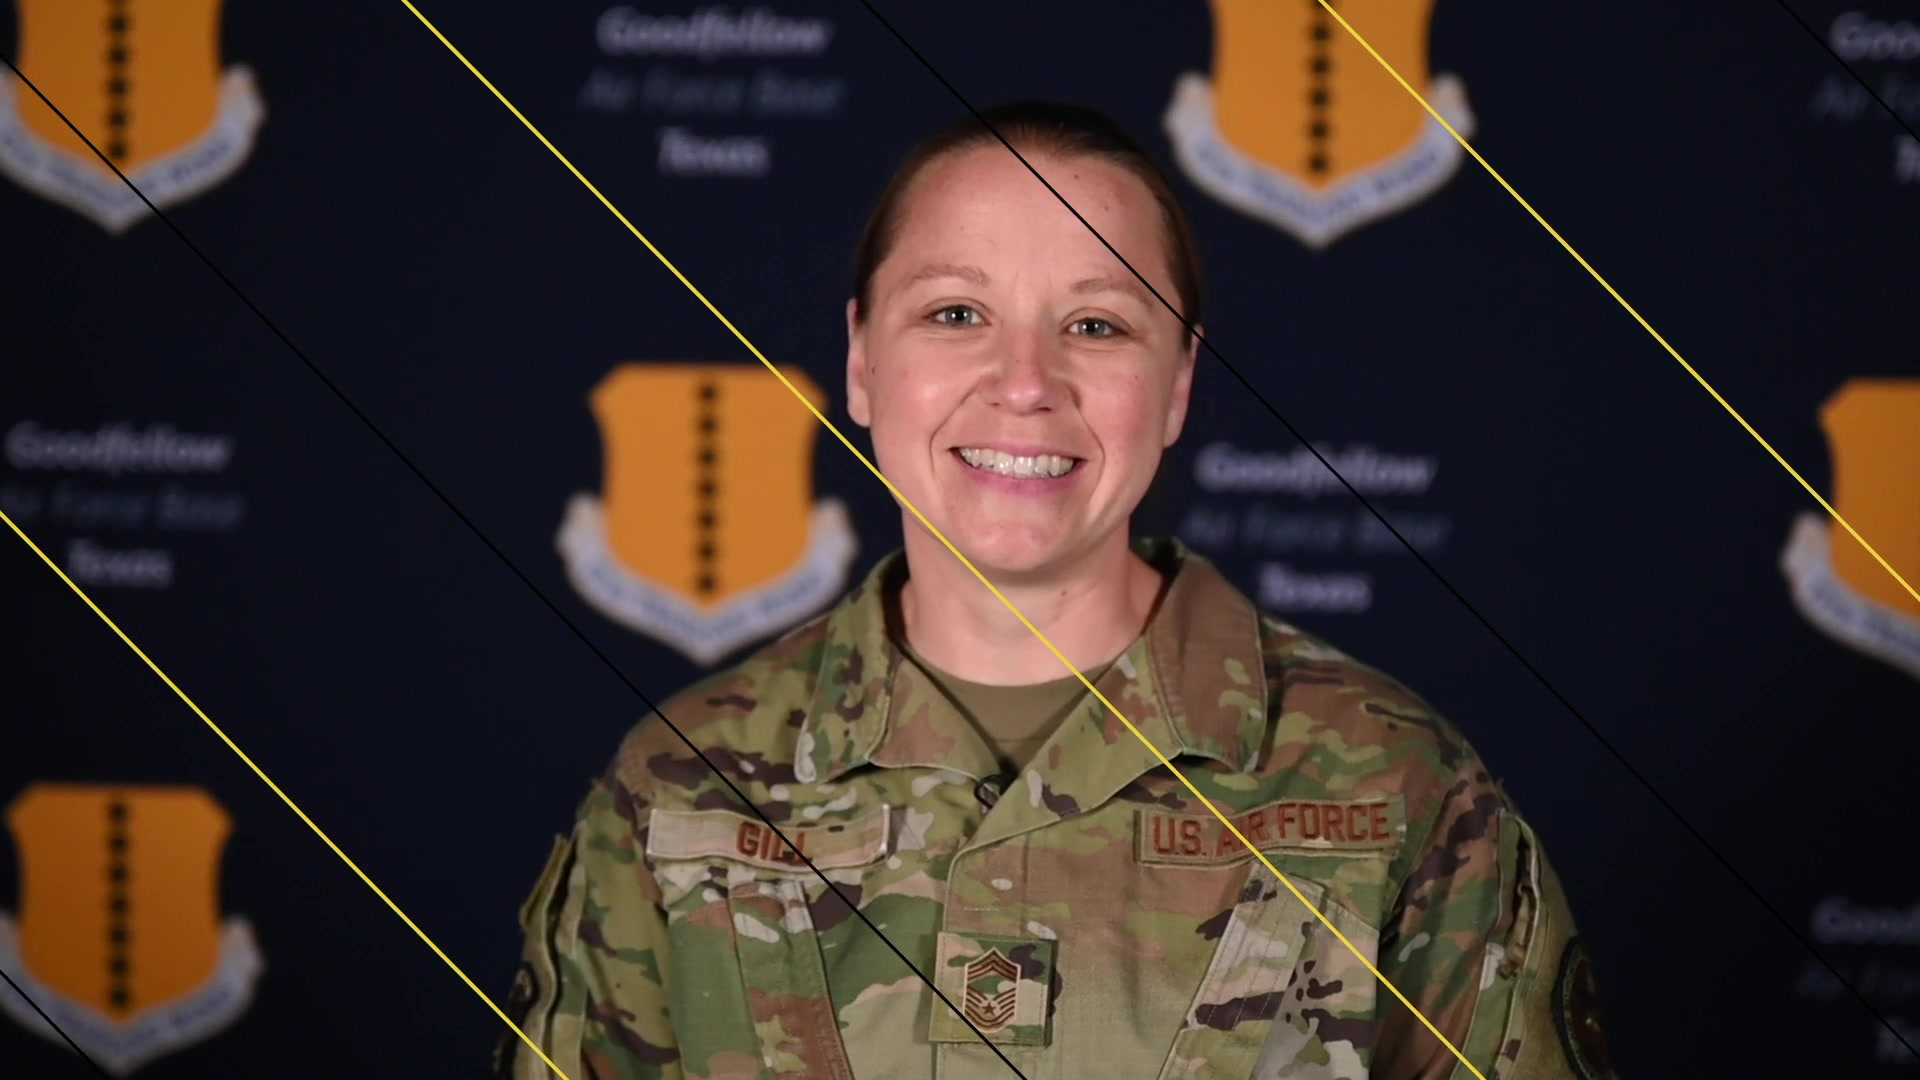 Meet Chief Master Sgt. Nicole Gill! She's the new superintendent for the 316th Training Squadron.